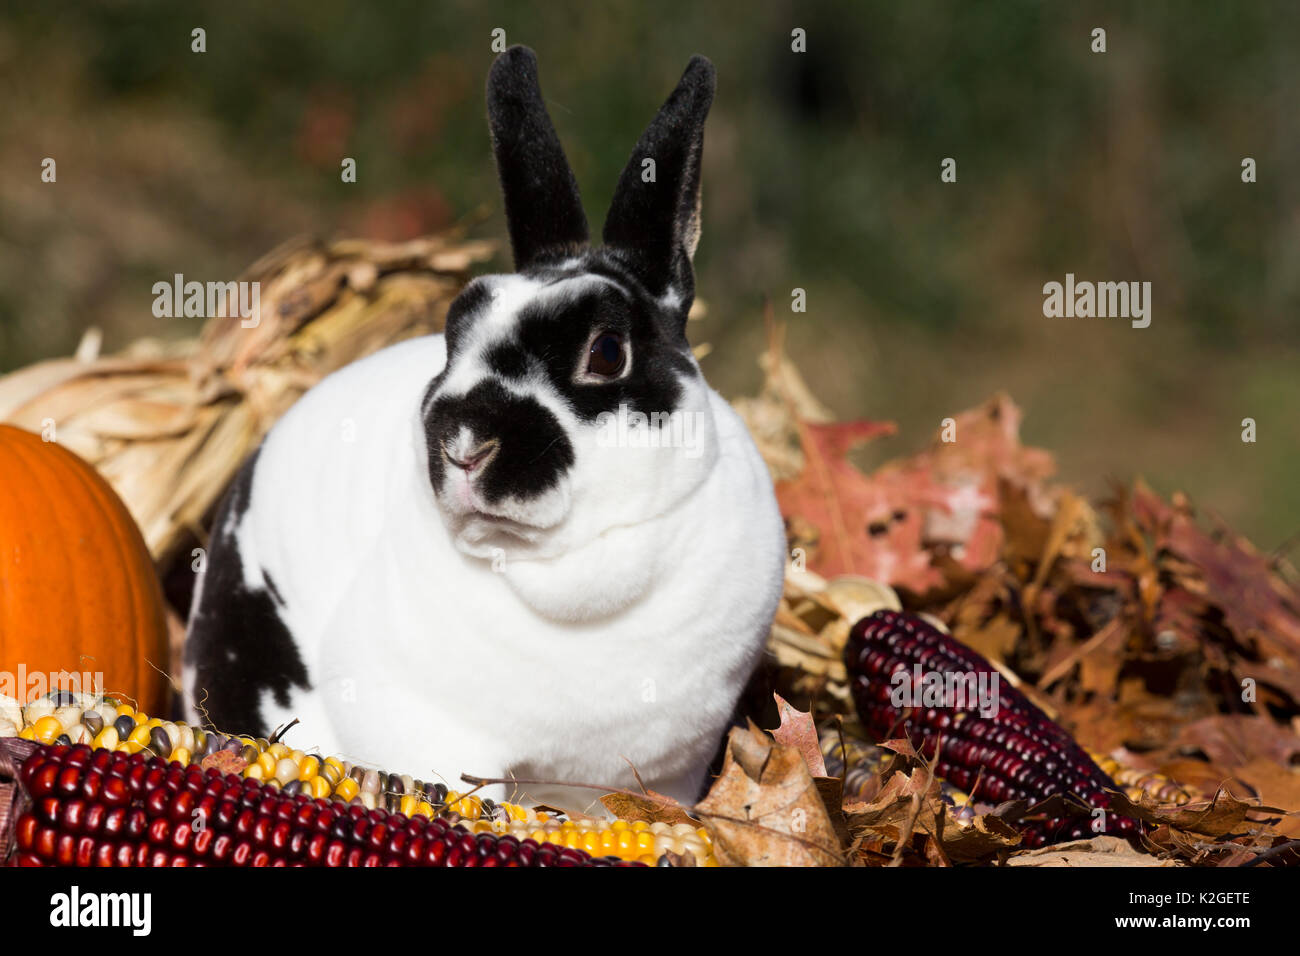 Mini Rex Rabbit in oak leaves and ears of Indian corn, Newington, Connecticut, USA - Stock Image